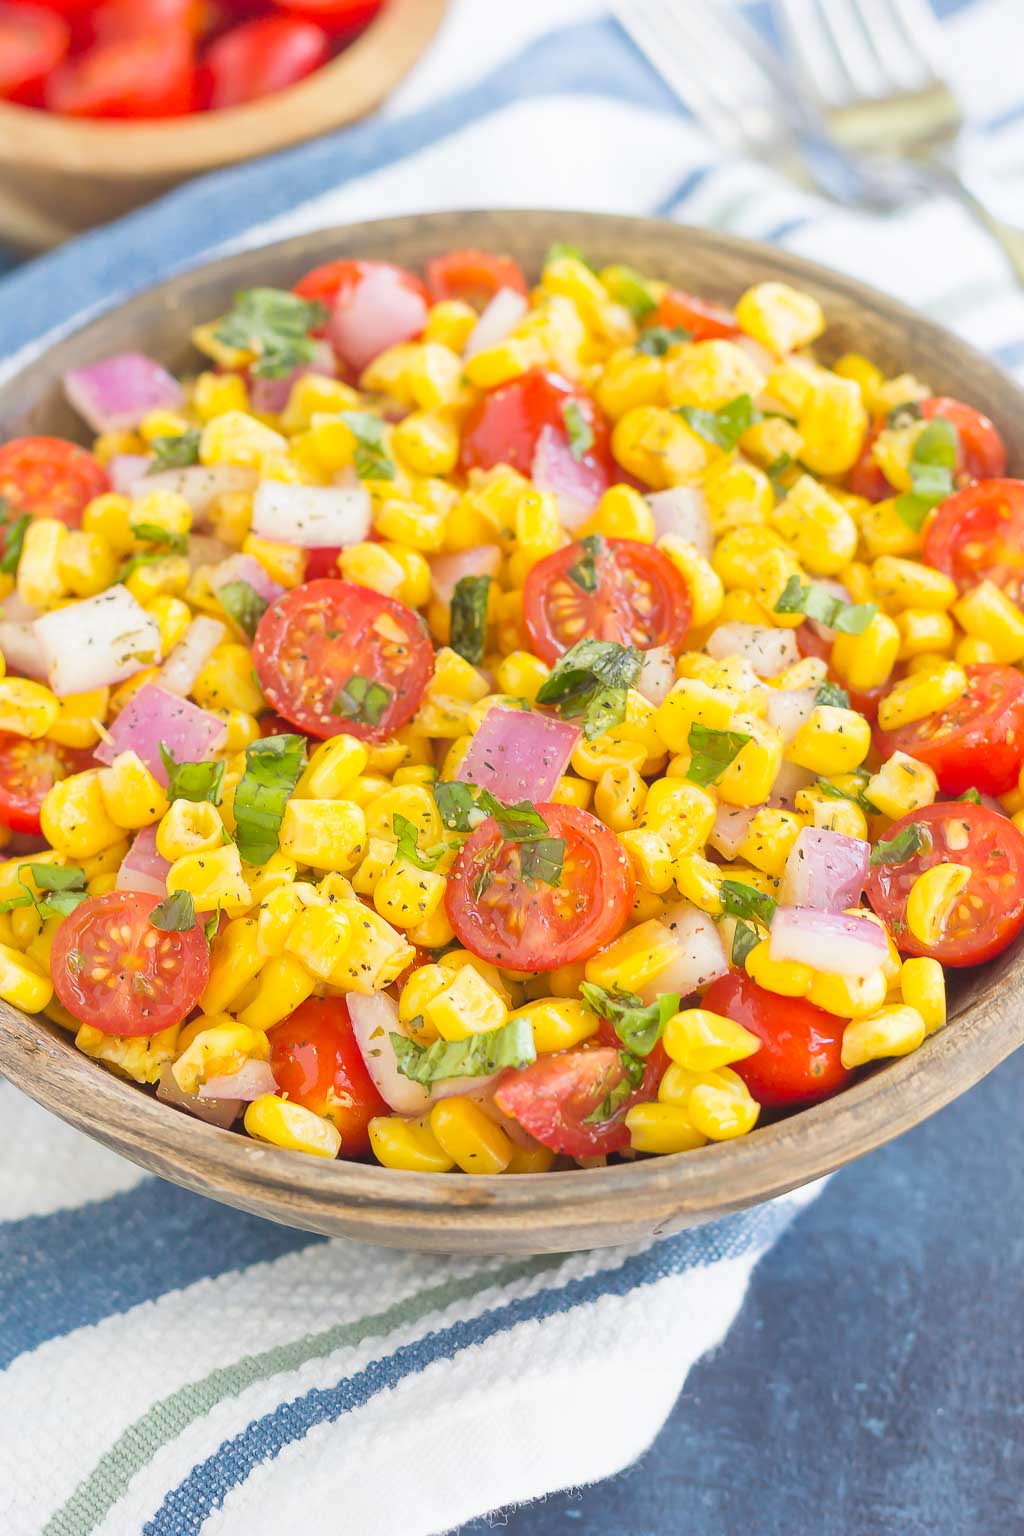 With fresh corn cut straight from the cob, cherry tomatoes, spices, and a light dressing, this Corn and Tomato Salad is perfect for a summer lunch or dinner! #corn #cornsalad #tomato #tomatosalad #corntomatosalad #salad #saladrecipe #summersalad